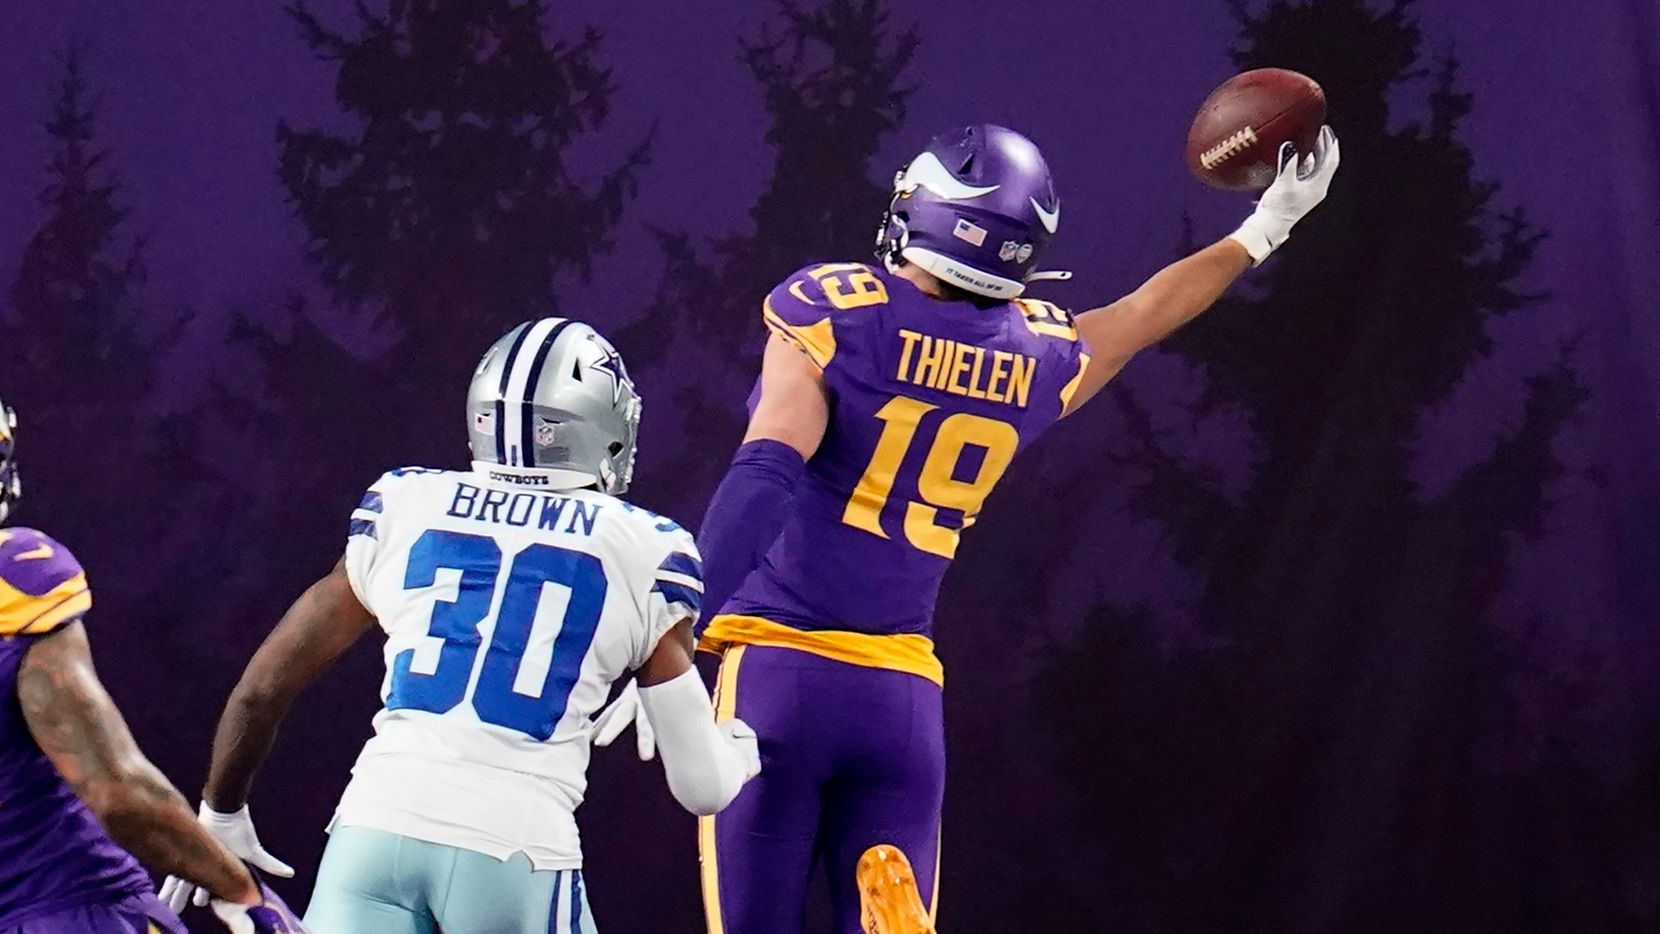 Minnesota Vikings wide receiver Adam Thielen (19) catches a 2-yard touchdown pass ahead of Dallas Cowboys cornerback Anthony Brown (30) during the second half of an NFL football game, Sunday, Nov. 22, 2020, in Minneapolis.